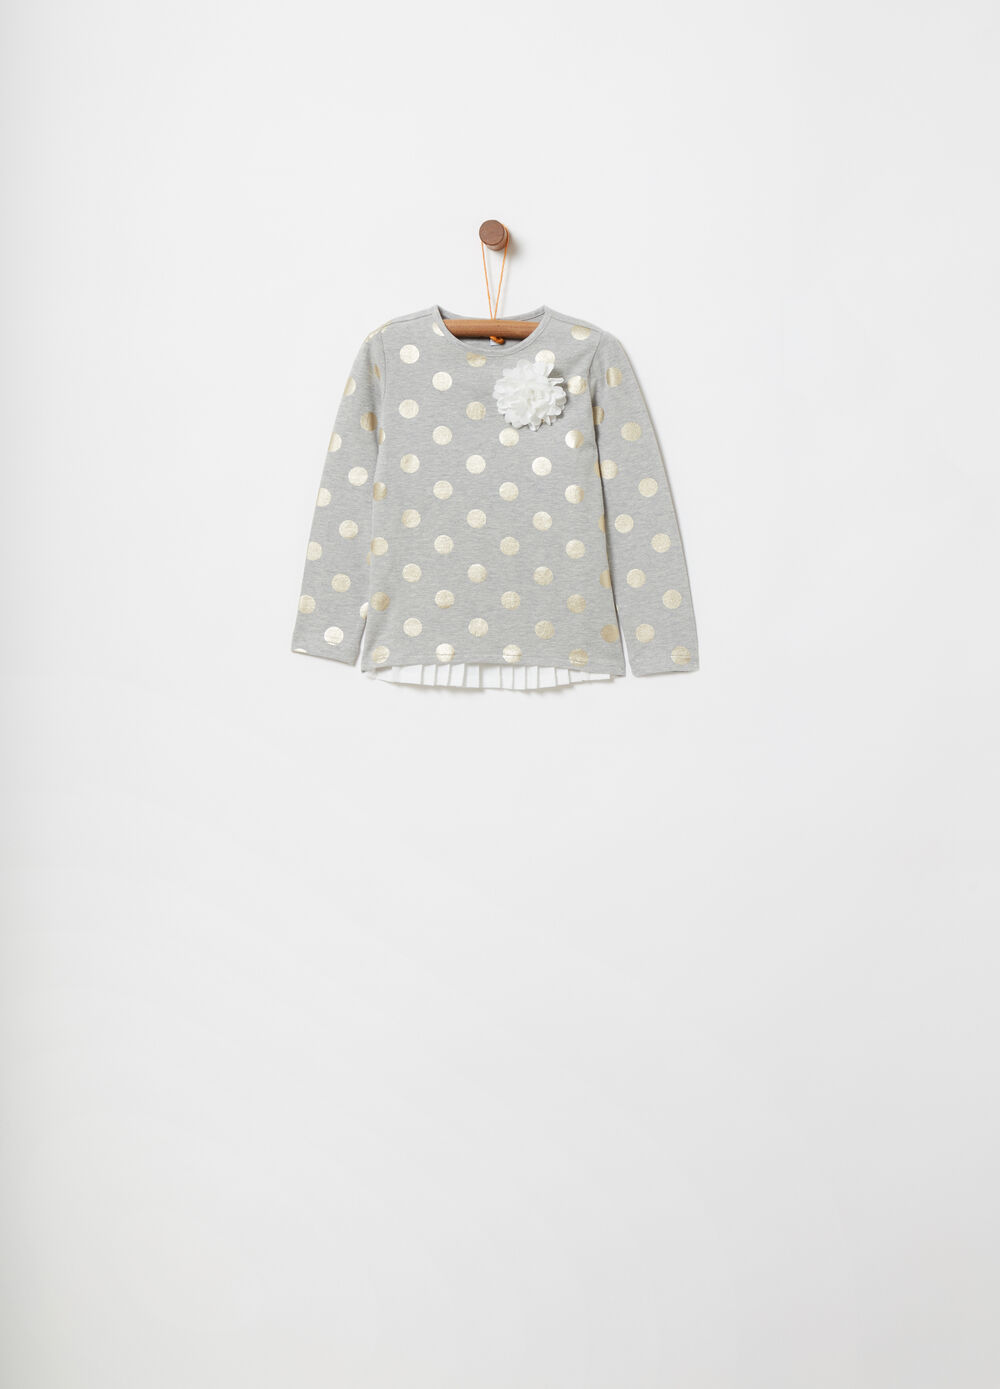 T-shirt with pleated panel and polka dot pattern